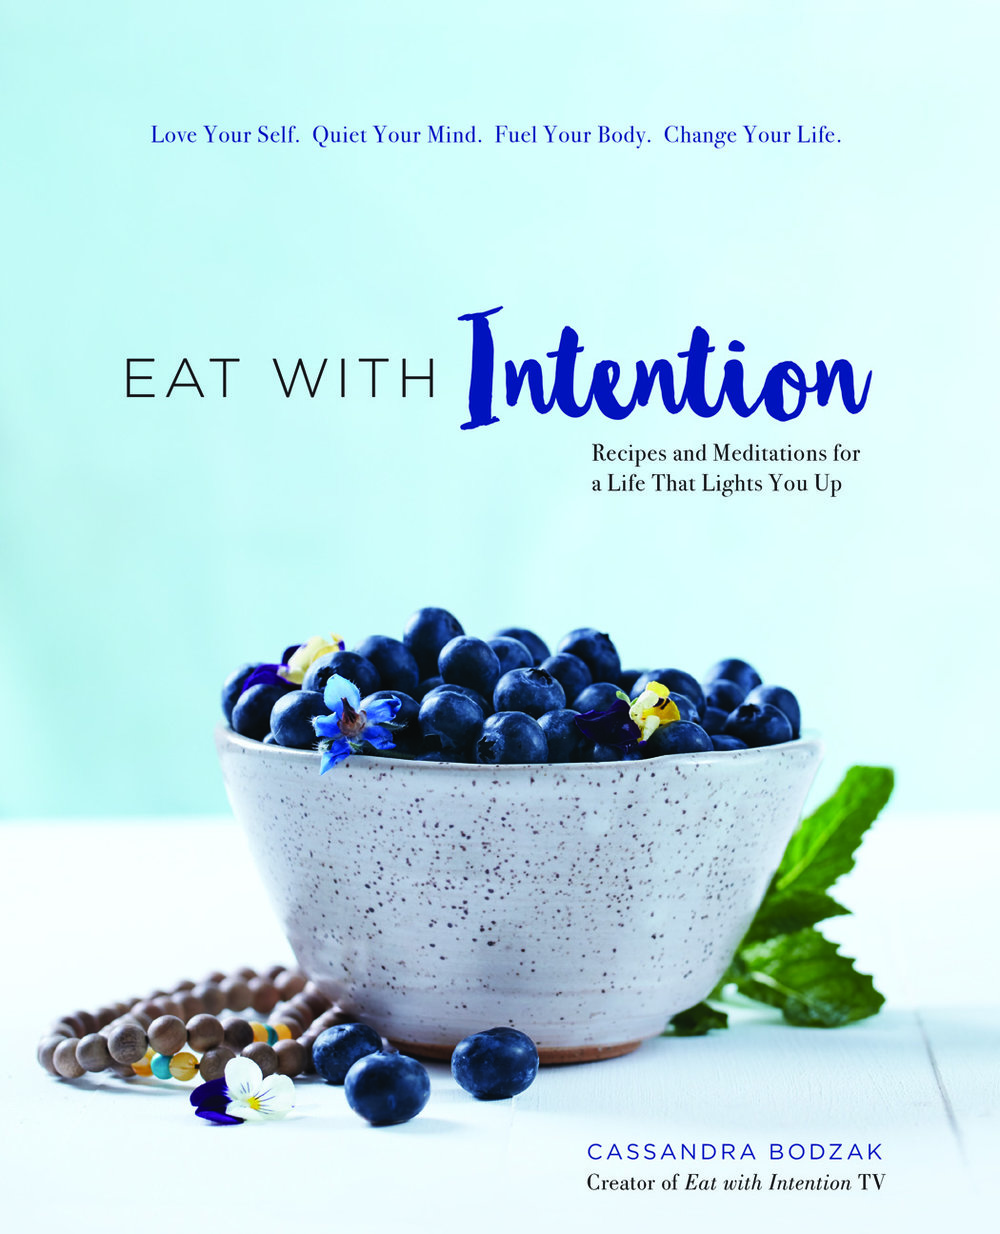 ART OF THE SNACK/NATIONAL GREEN ARE KEY - Eat With Intention by Cassandra Bodzak